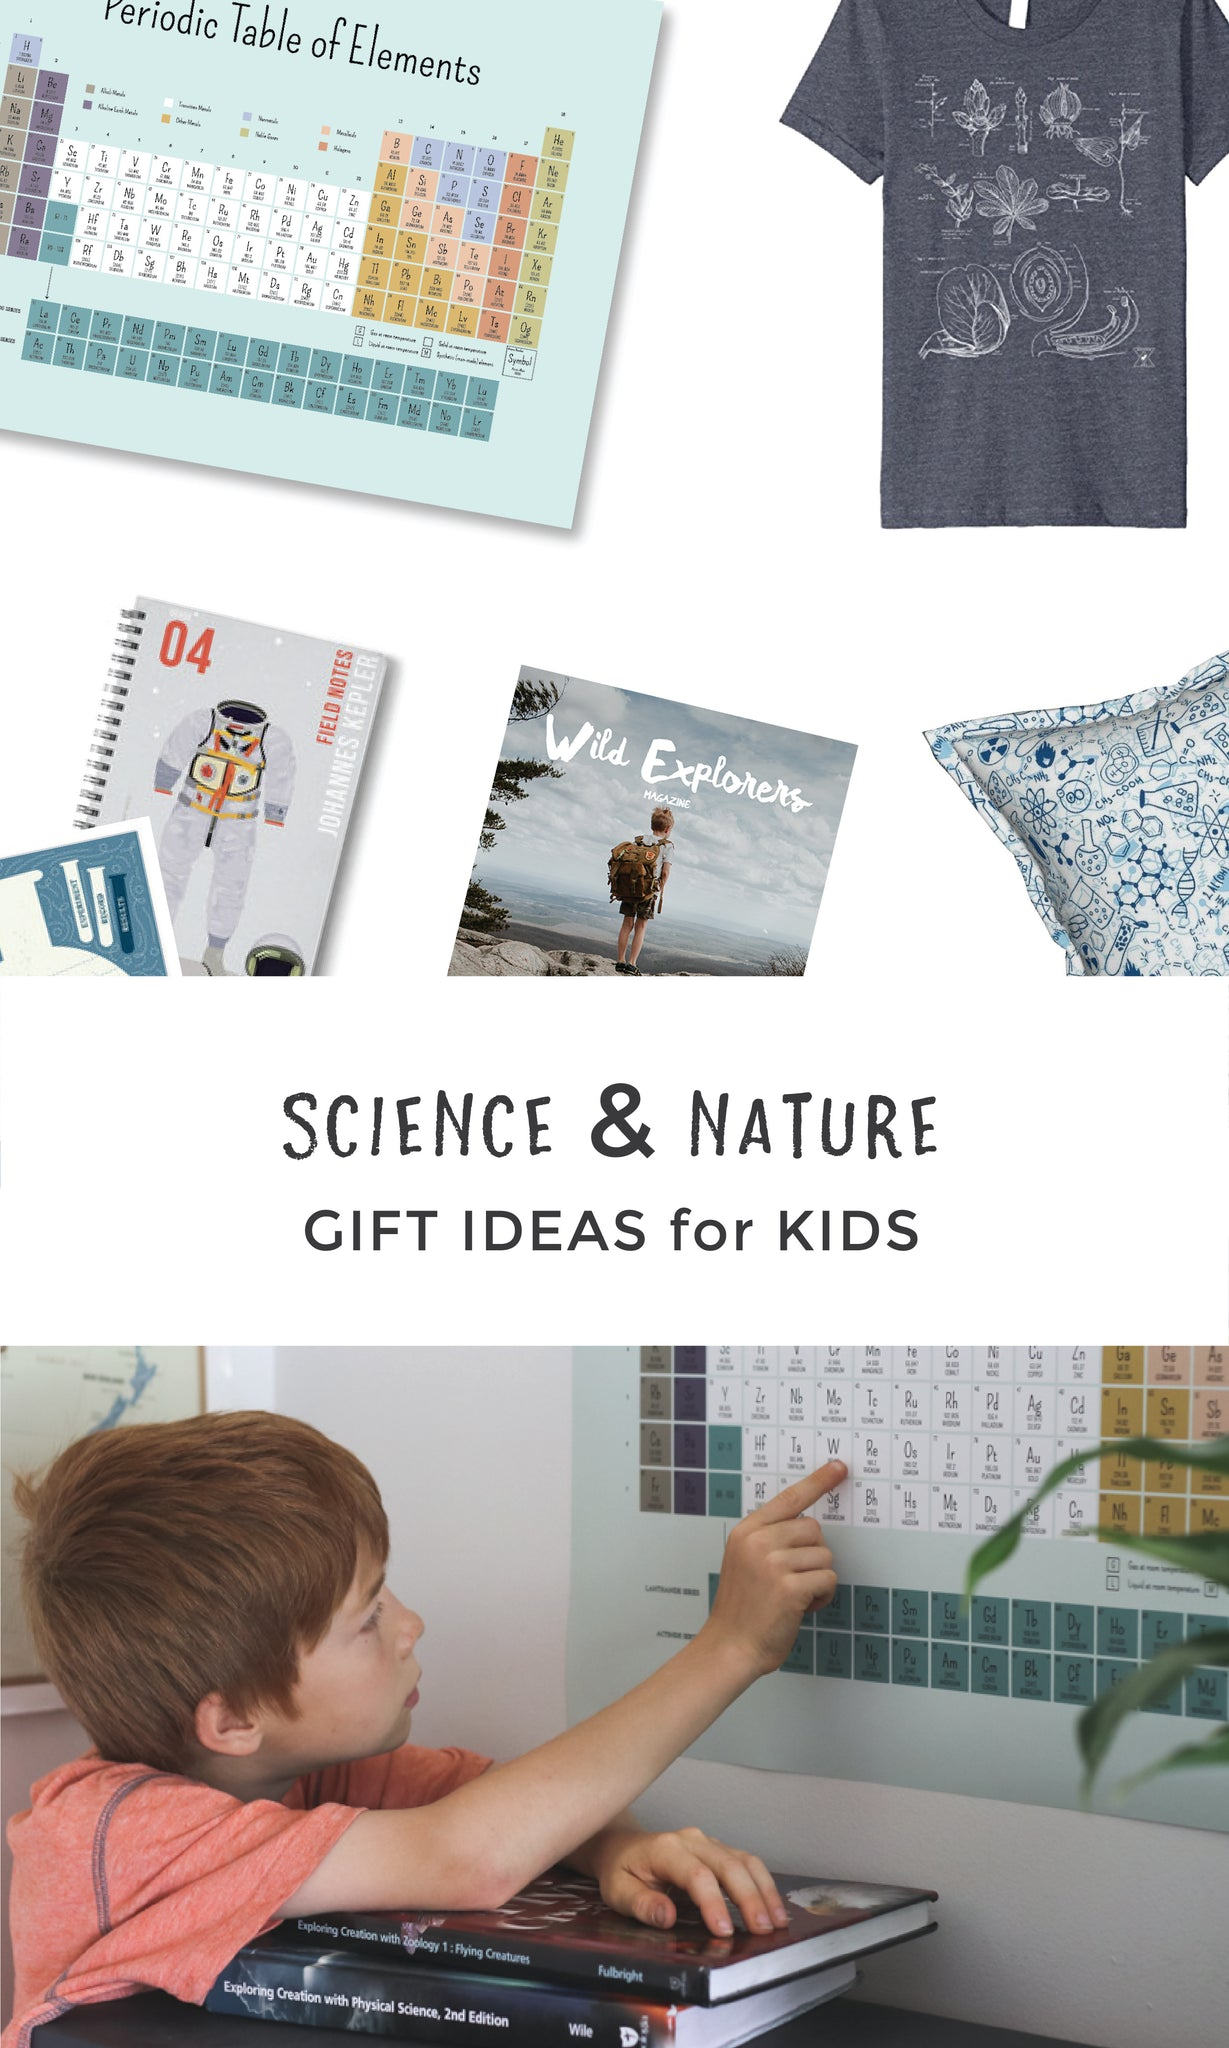 Science & Nature Gifts Ideas for Kids | Non-toy gift guide | Pretty Nerdy Press